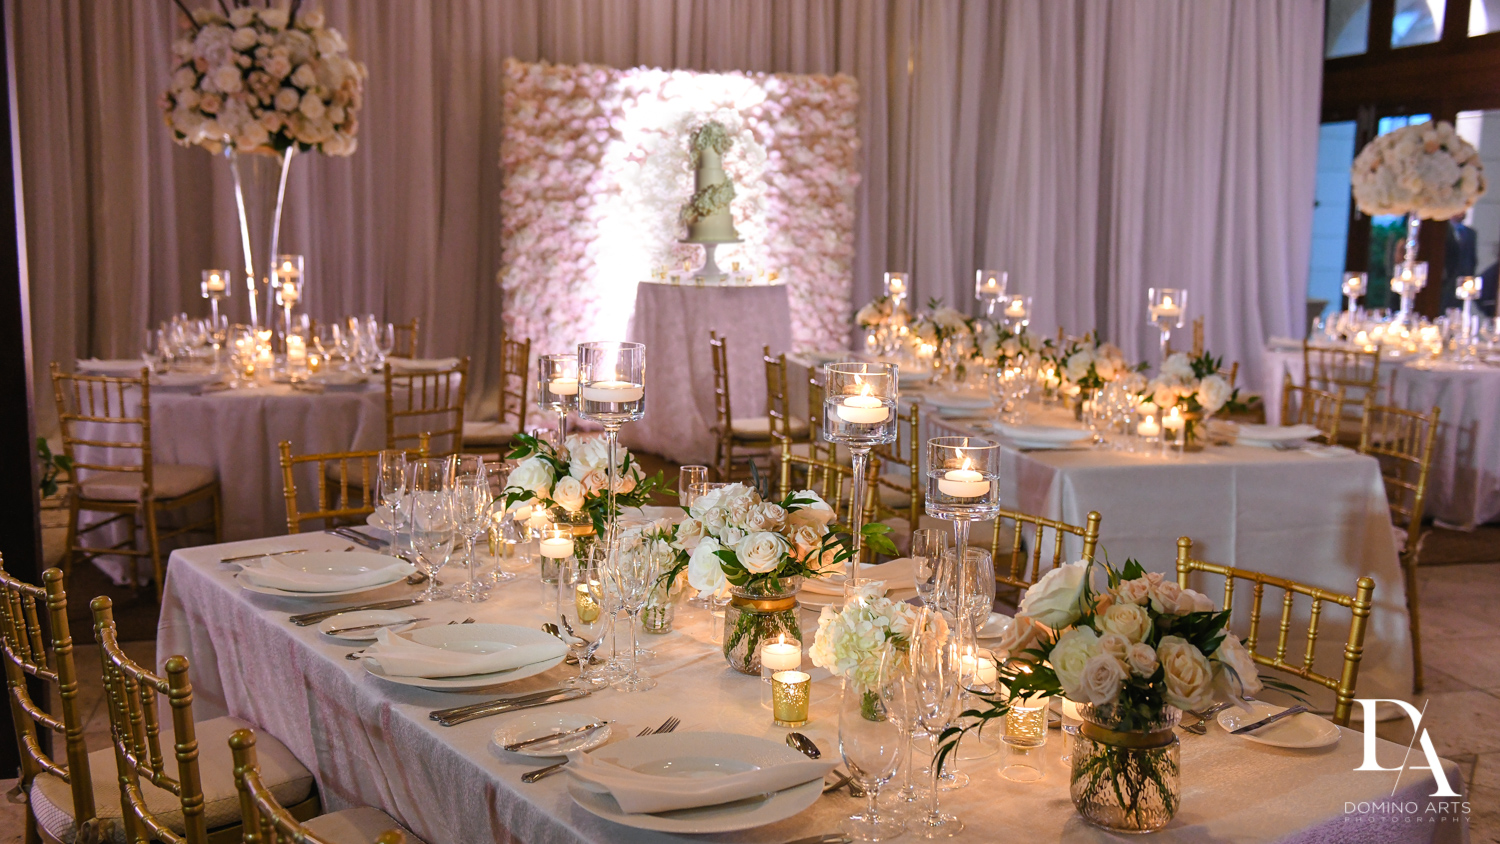 amazing room decor at Extravagant Wedding at The Breakers Palm Beach by Domino Arts Photography